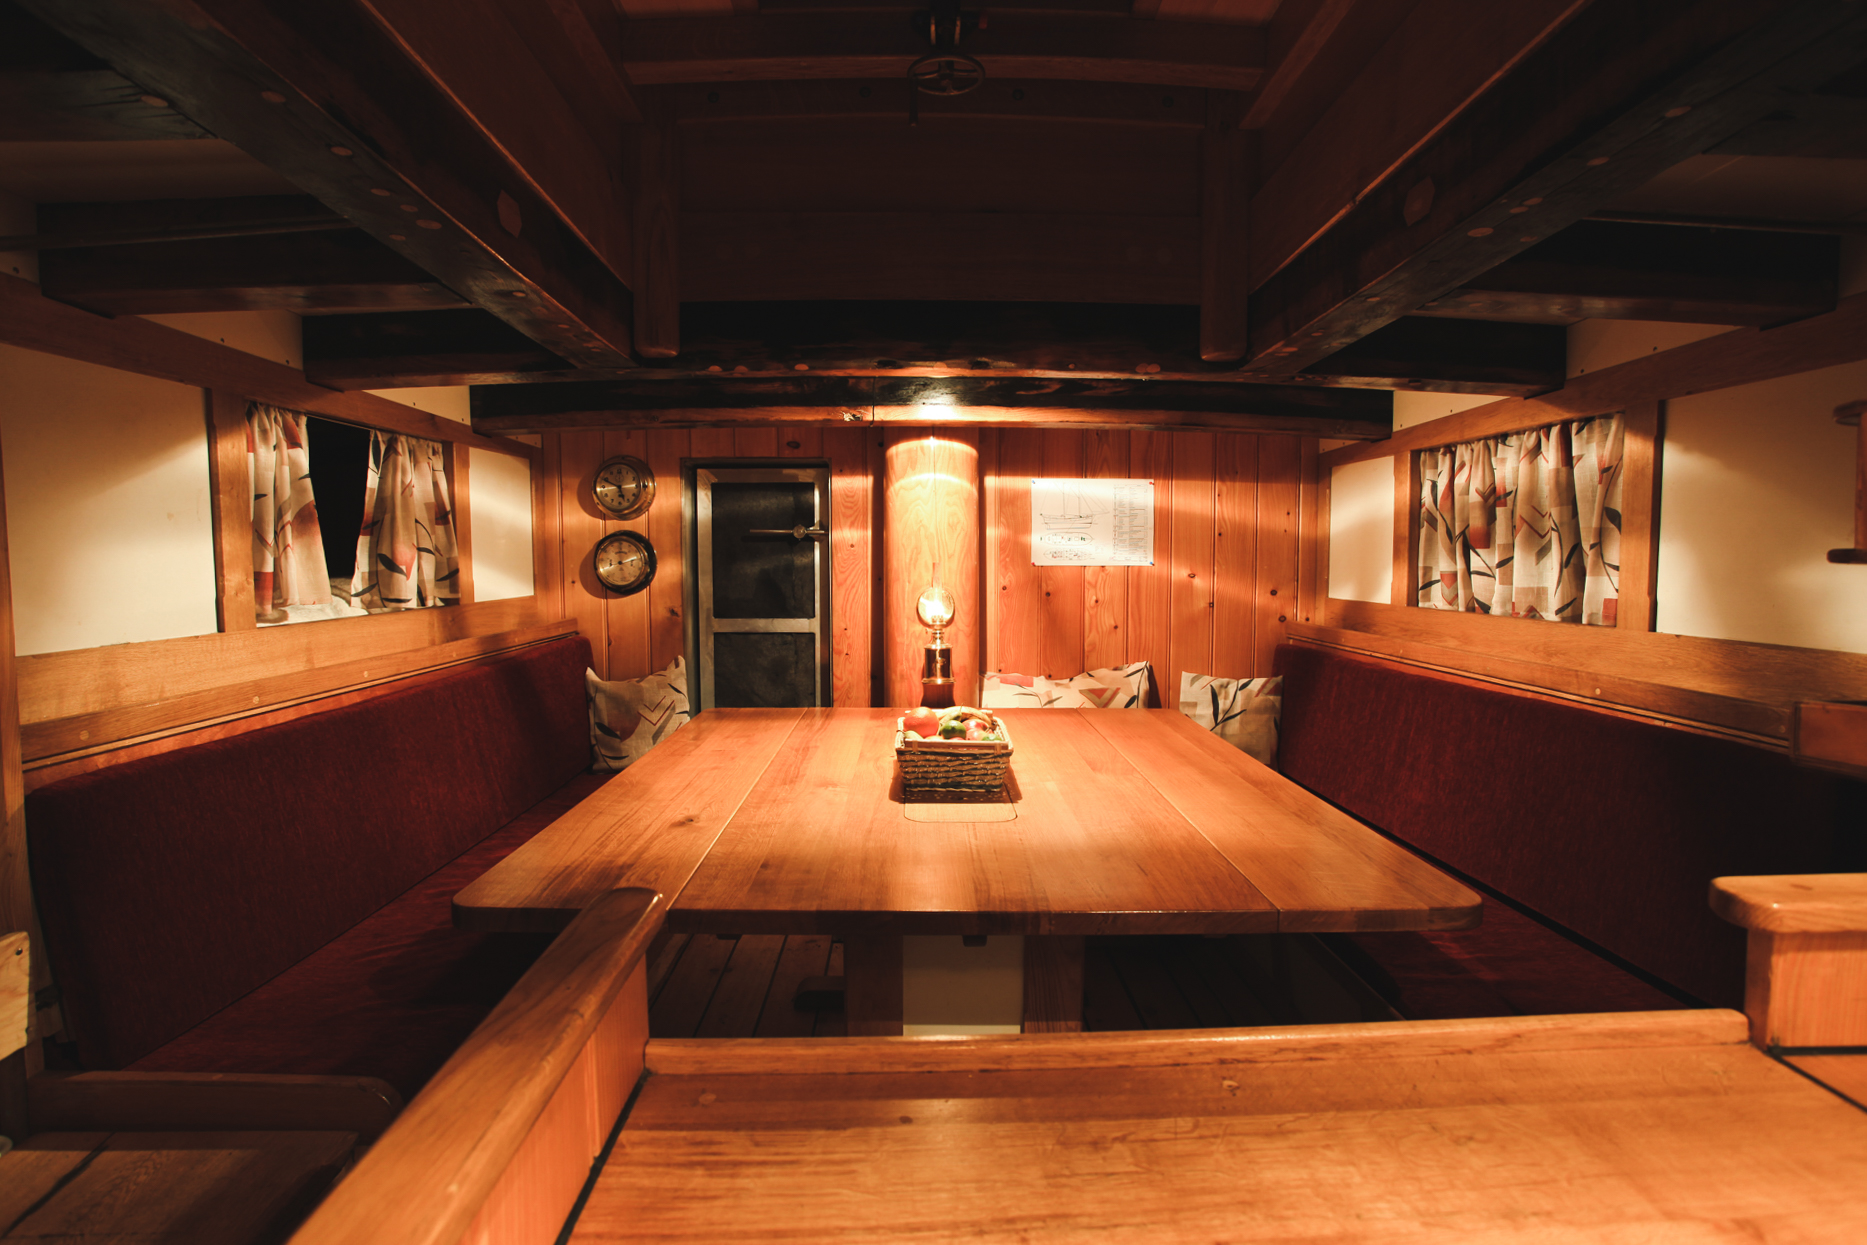 benjamin-hardman-iceland-common-area-below-deck-in-schooner-hildur.jpg